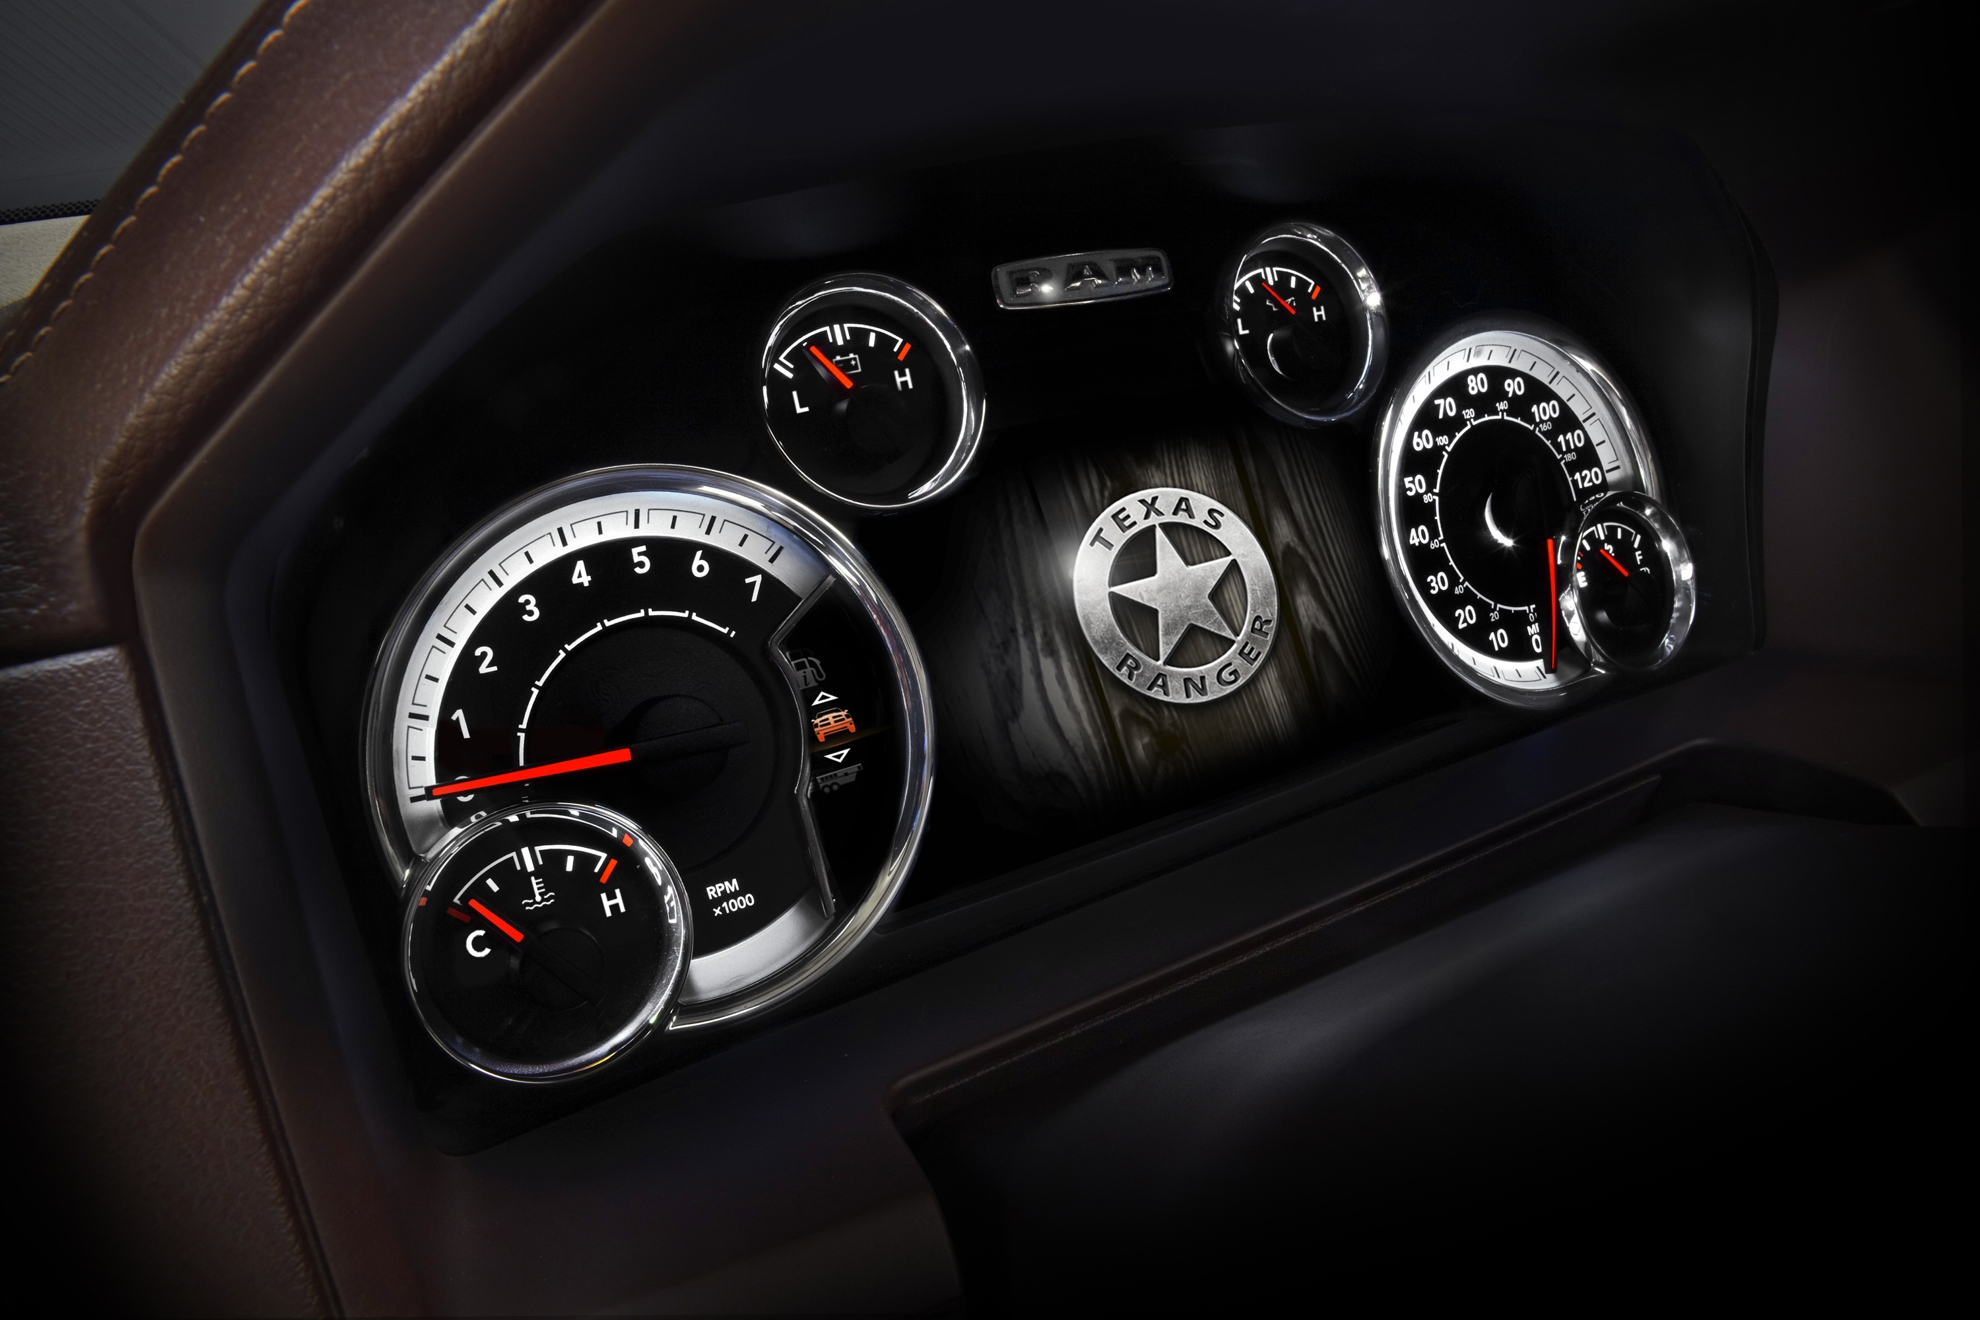 Dodge-Ram-Dashboard